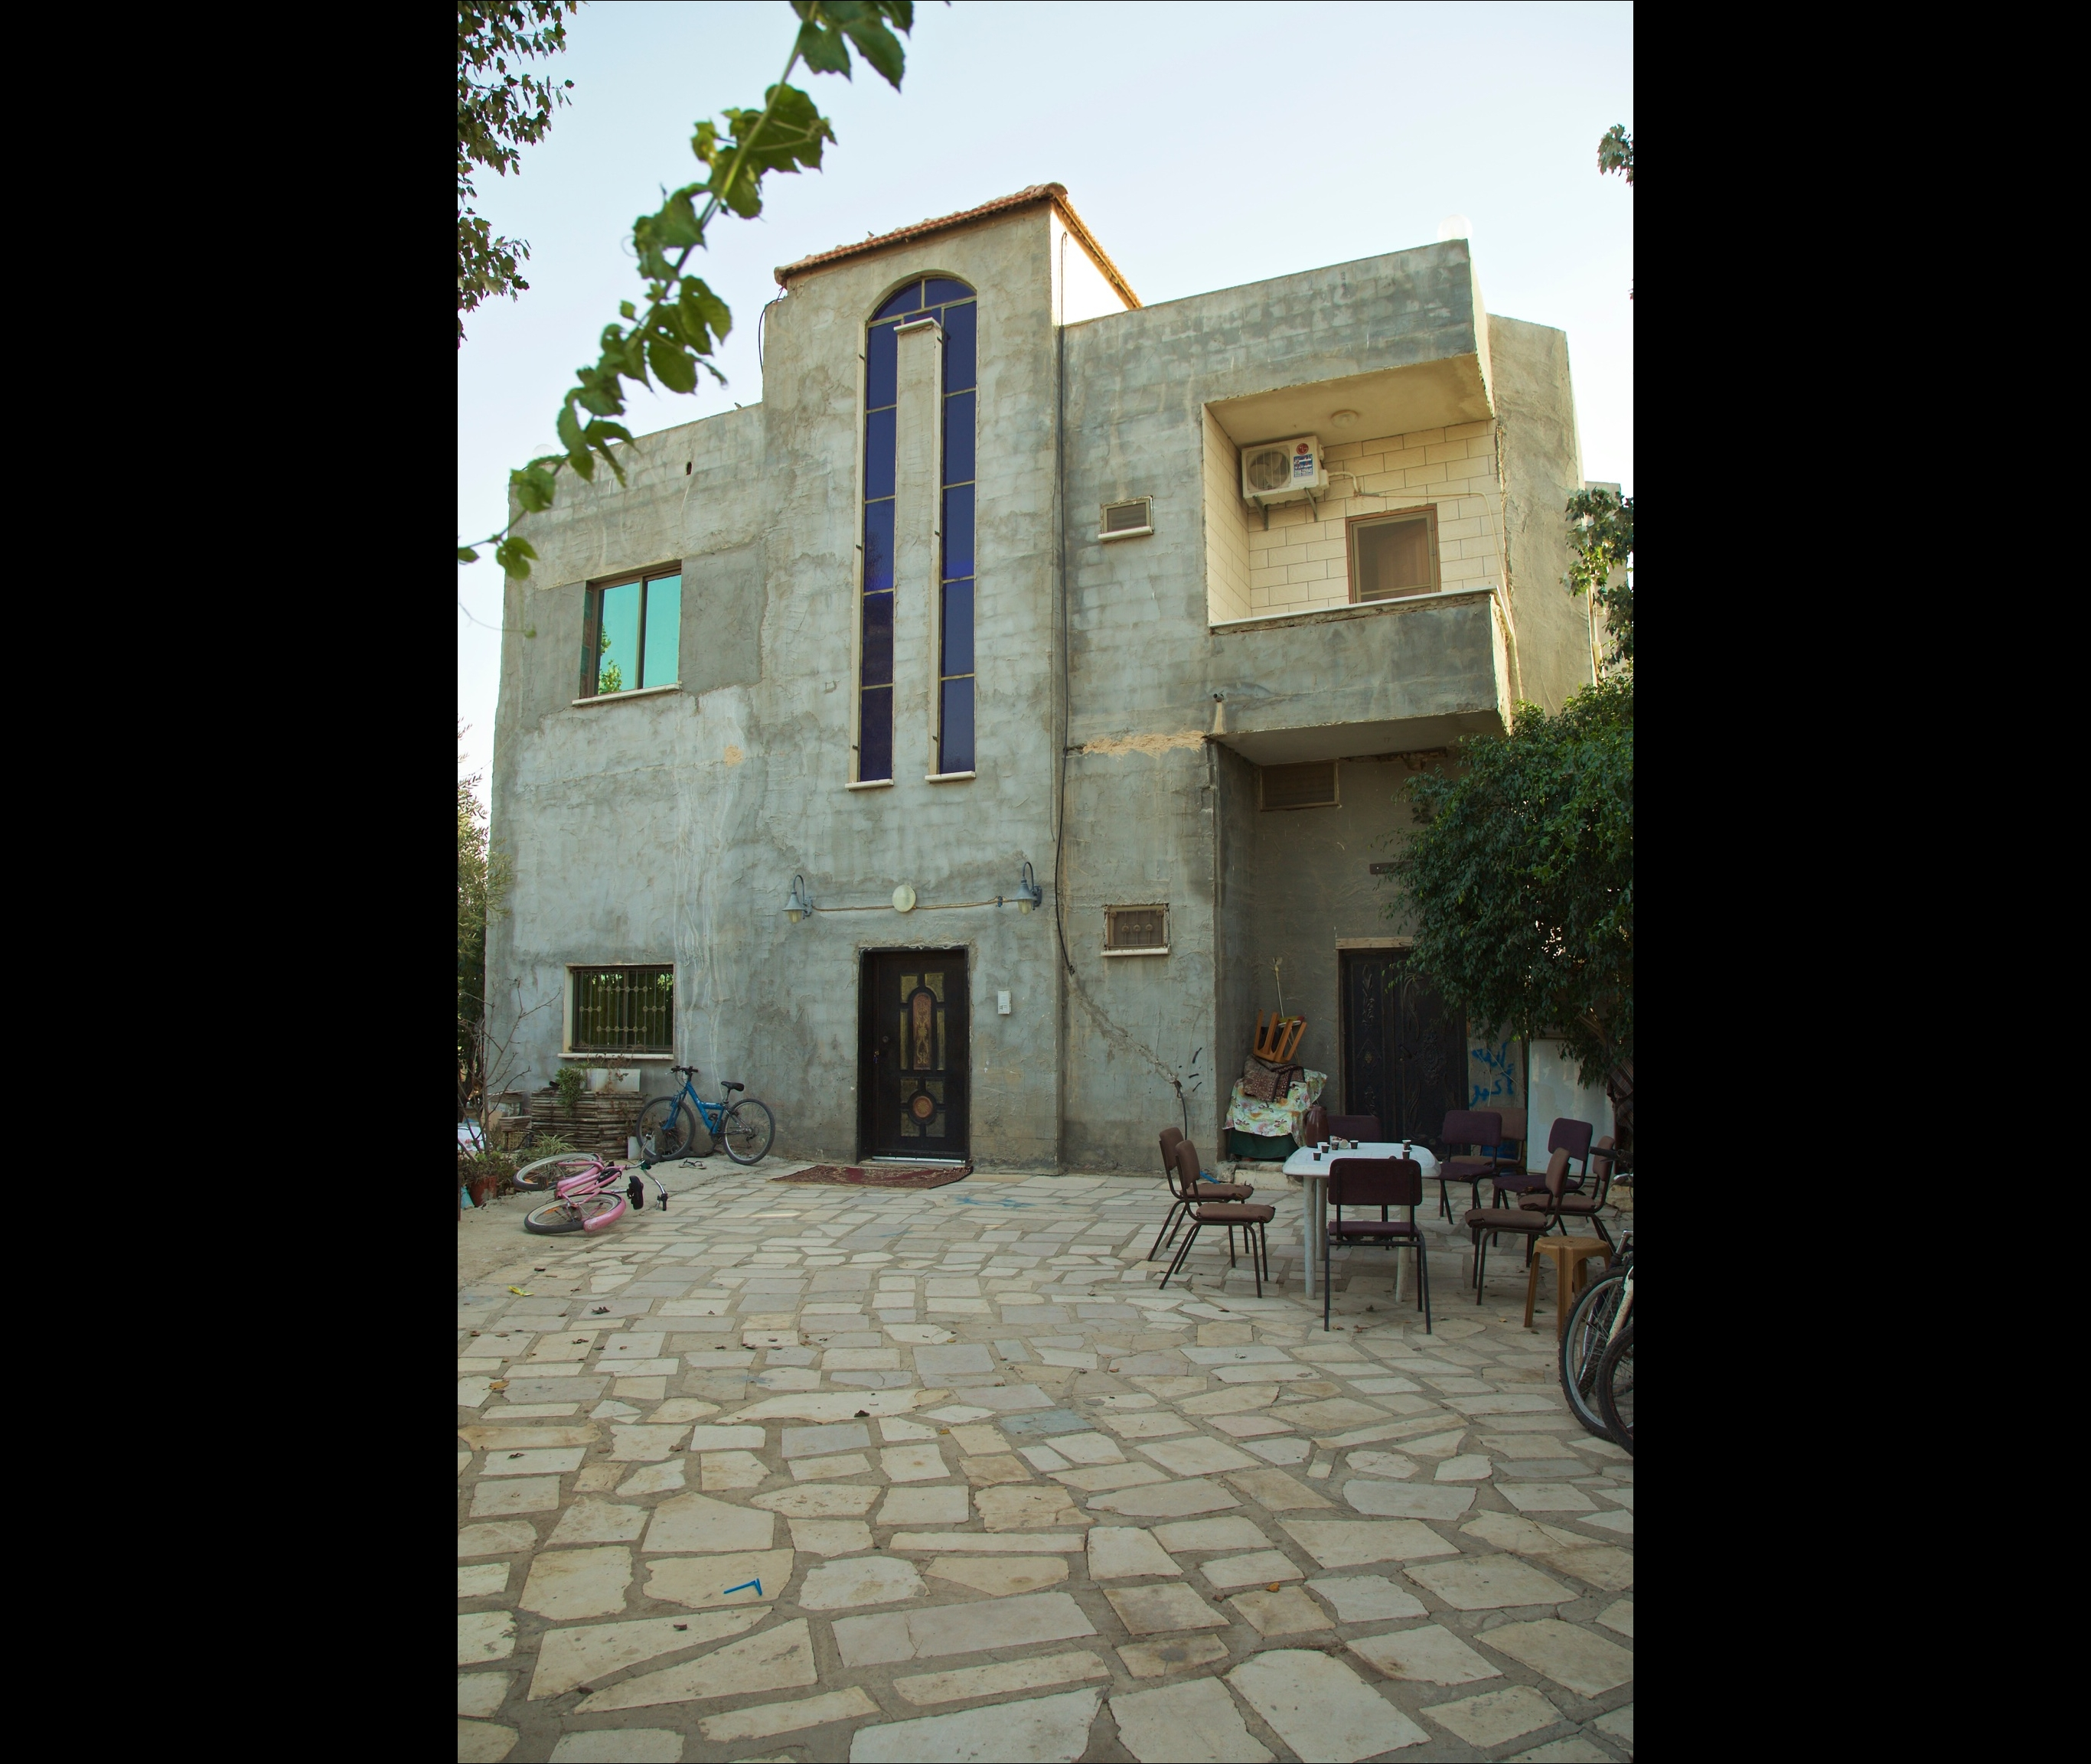 homestay with Remah Abbas and her husband Ahmid. Burkin, Palestine. 56643